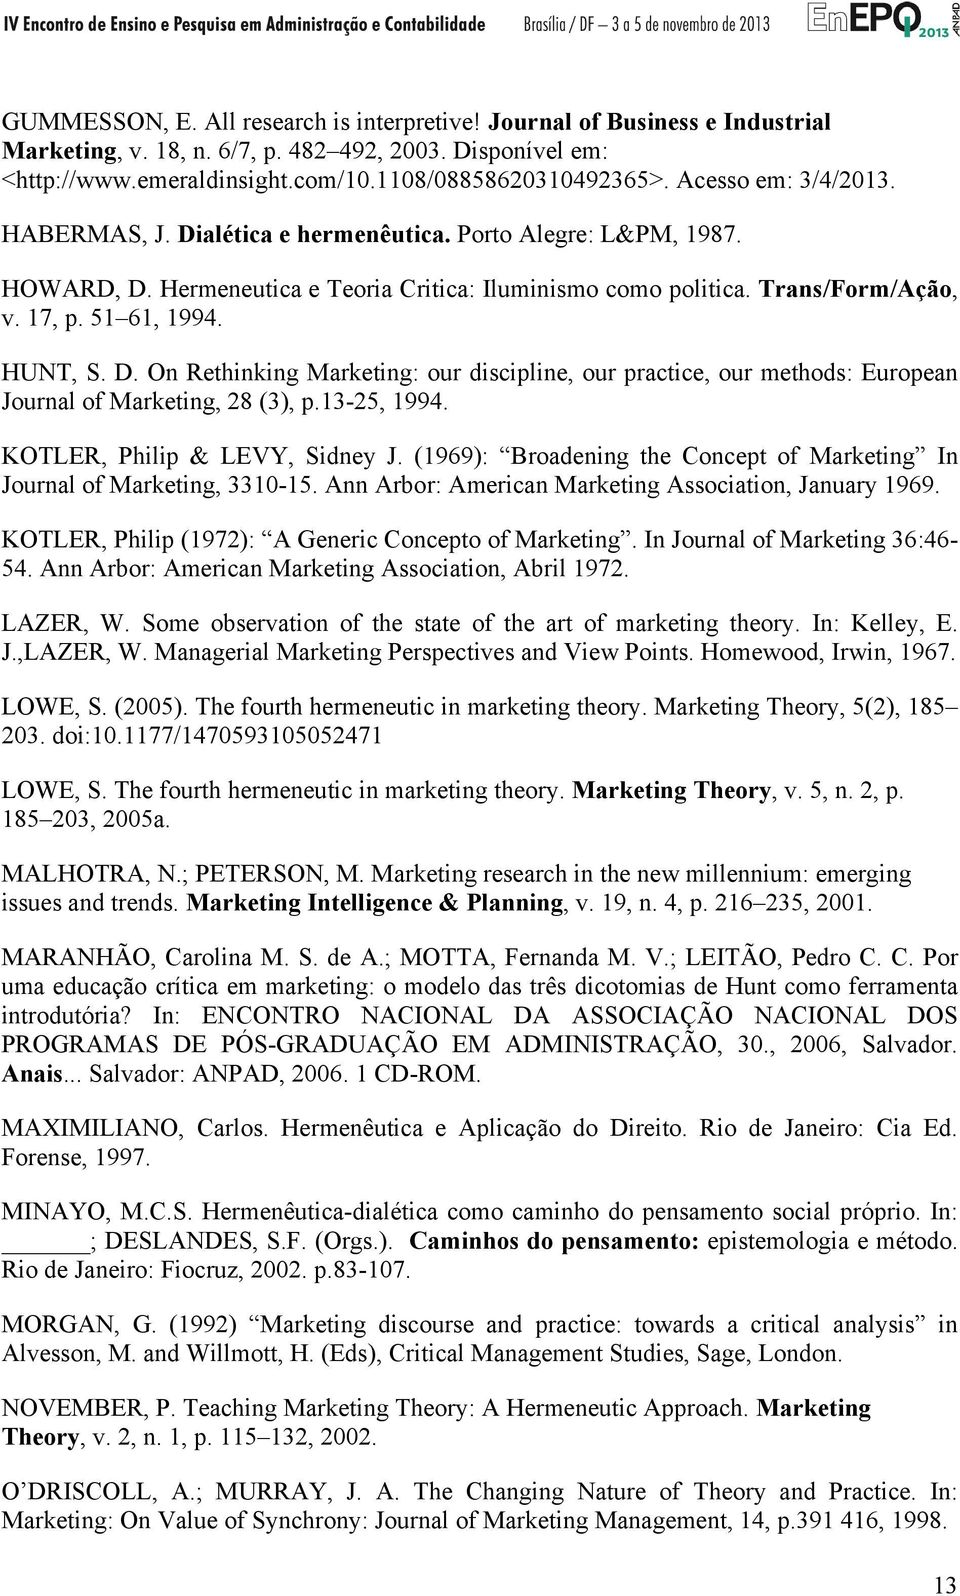 HUNT, S. D. On Rethinking Marketing: our discipline, our practice, our methods: European Journal of Marketing, 28 (3), p.13-25, 1994. KOTLER, Philip & LEVY, Sidney J.